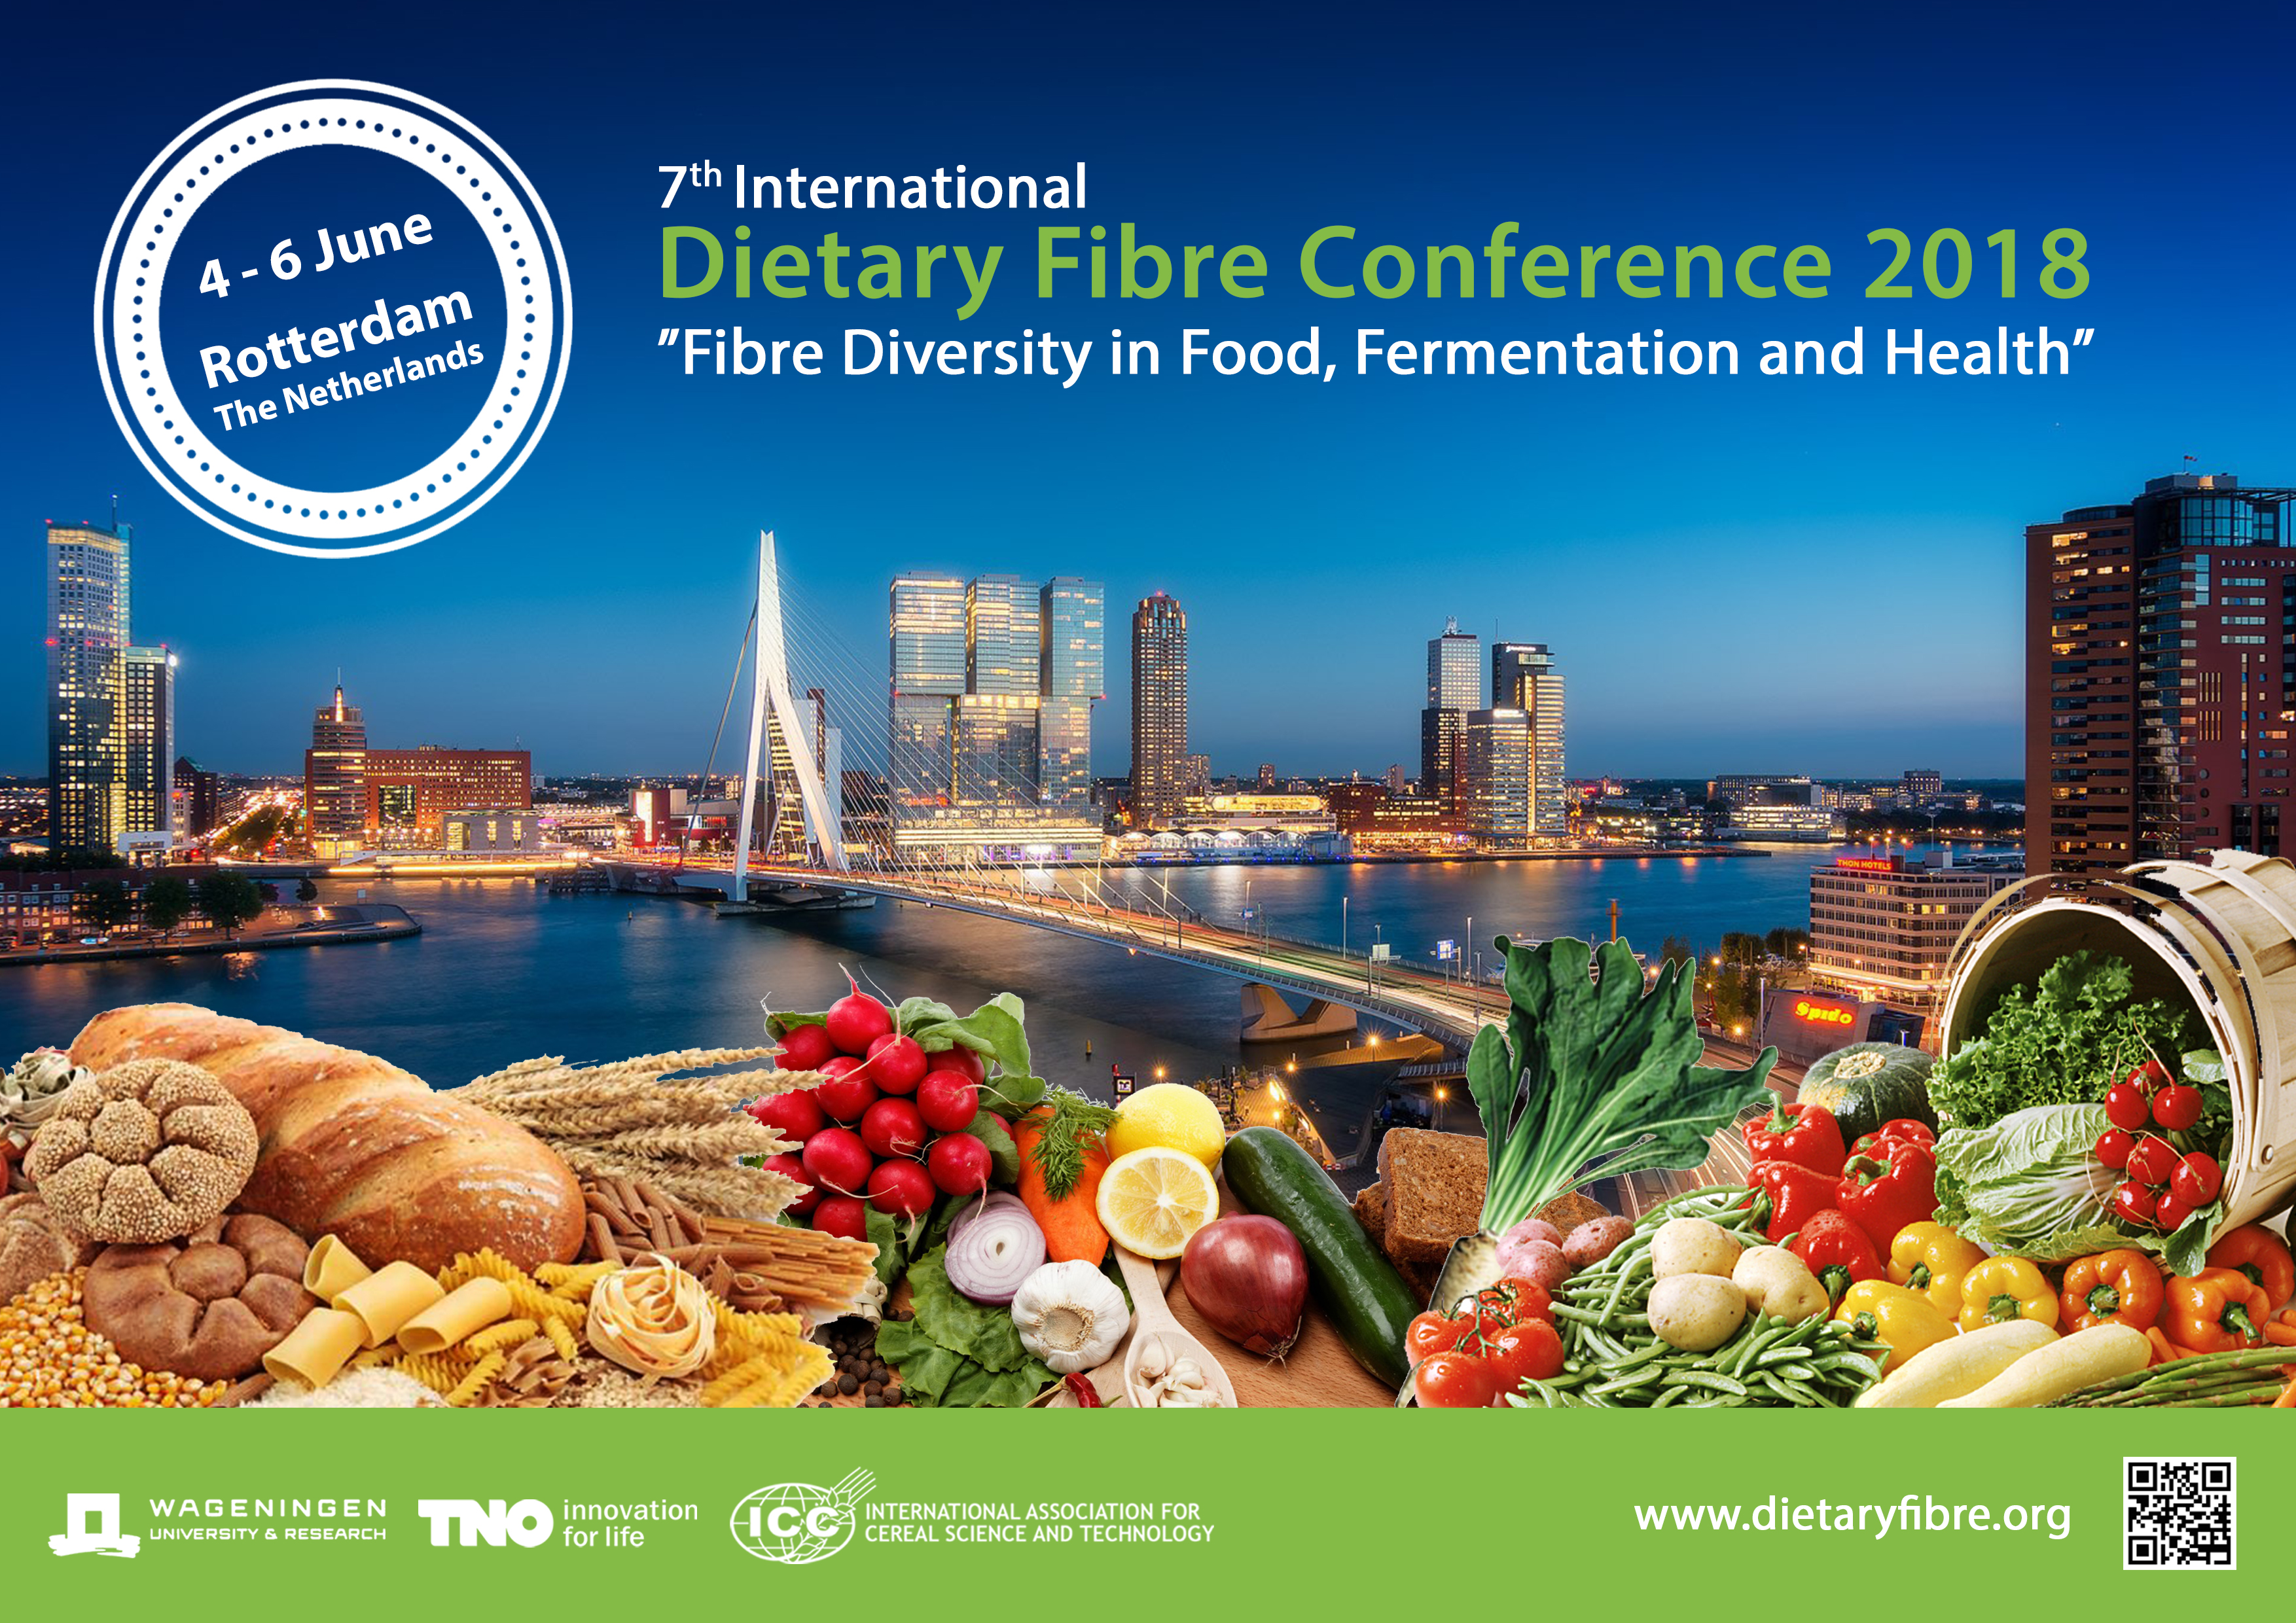 7th International Dietary Fibre Conference 2018 - Final programme available!